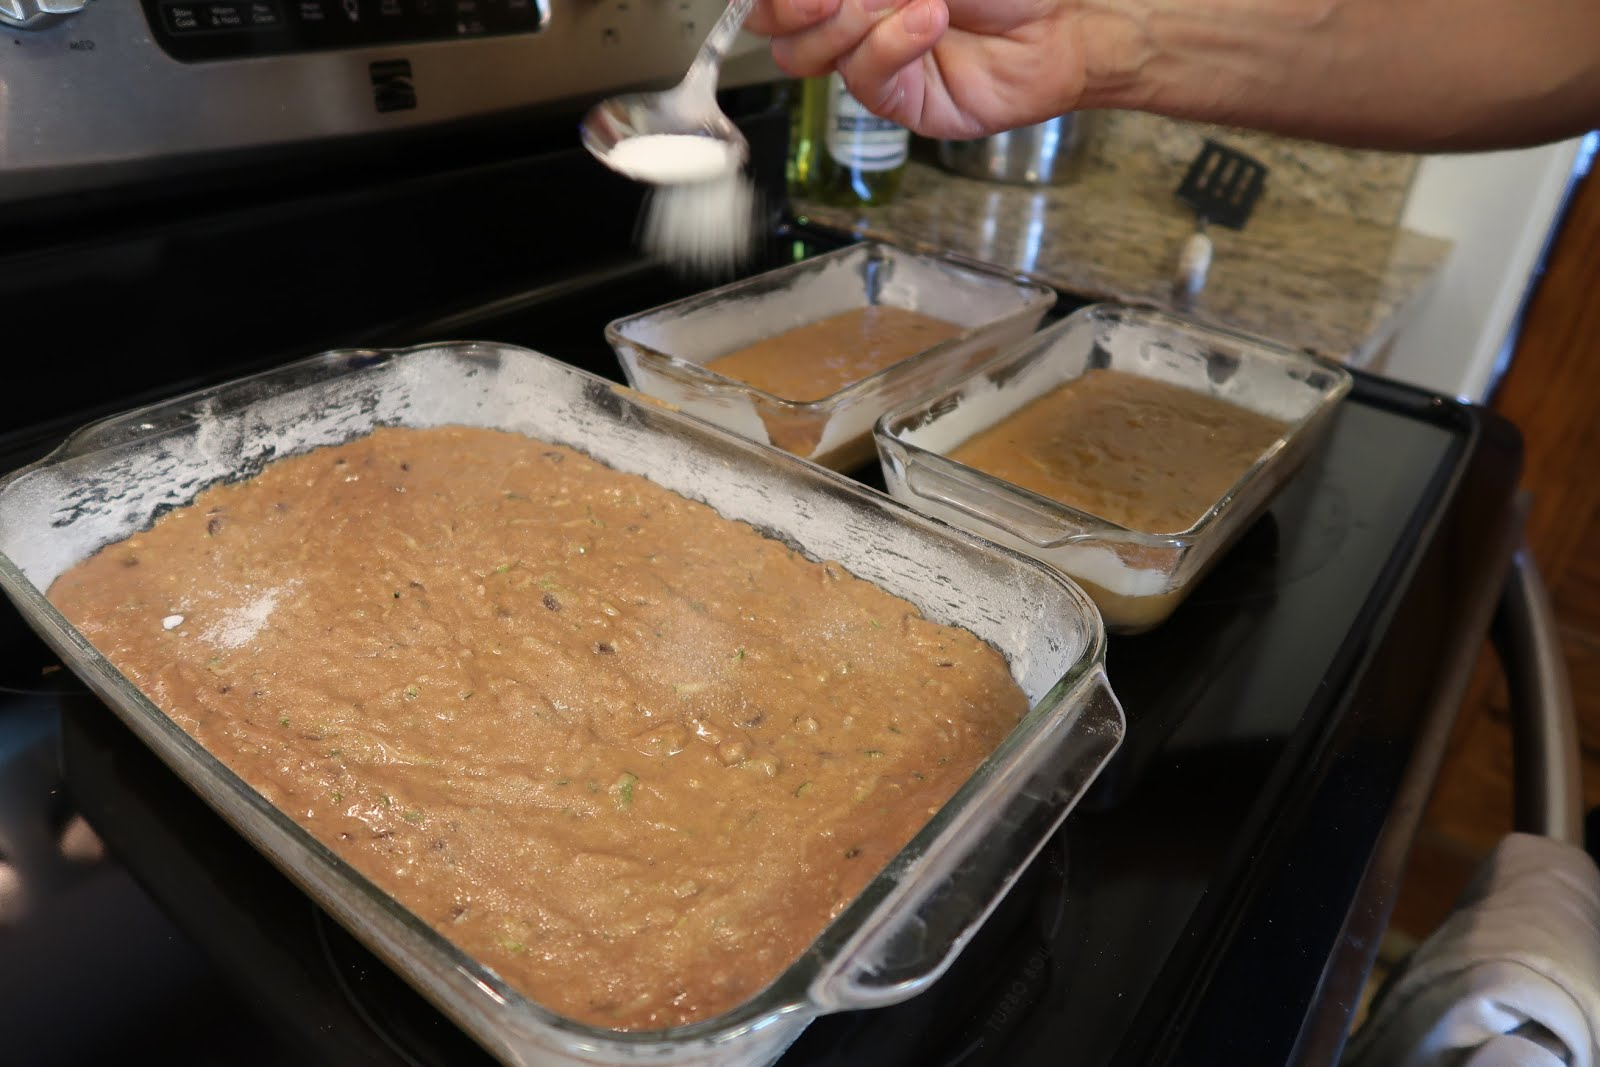 zucchini bread brownies recipe cooking baking garden vegetable bake baker loaves sprinkle sugar oven batter dough pan